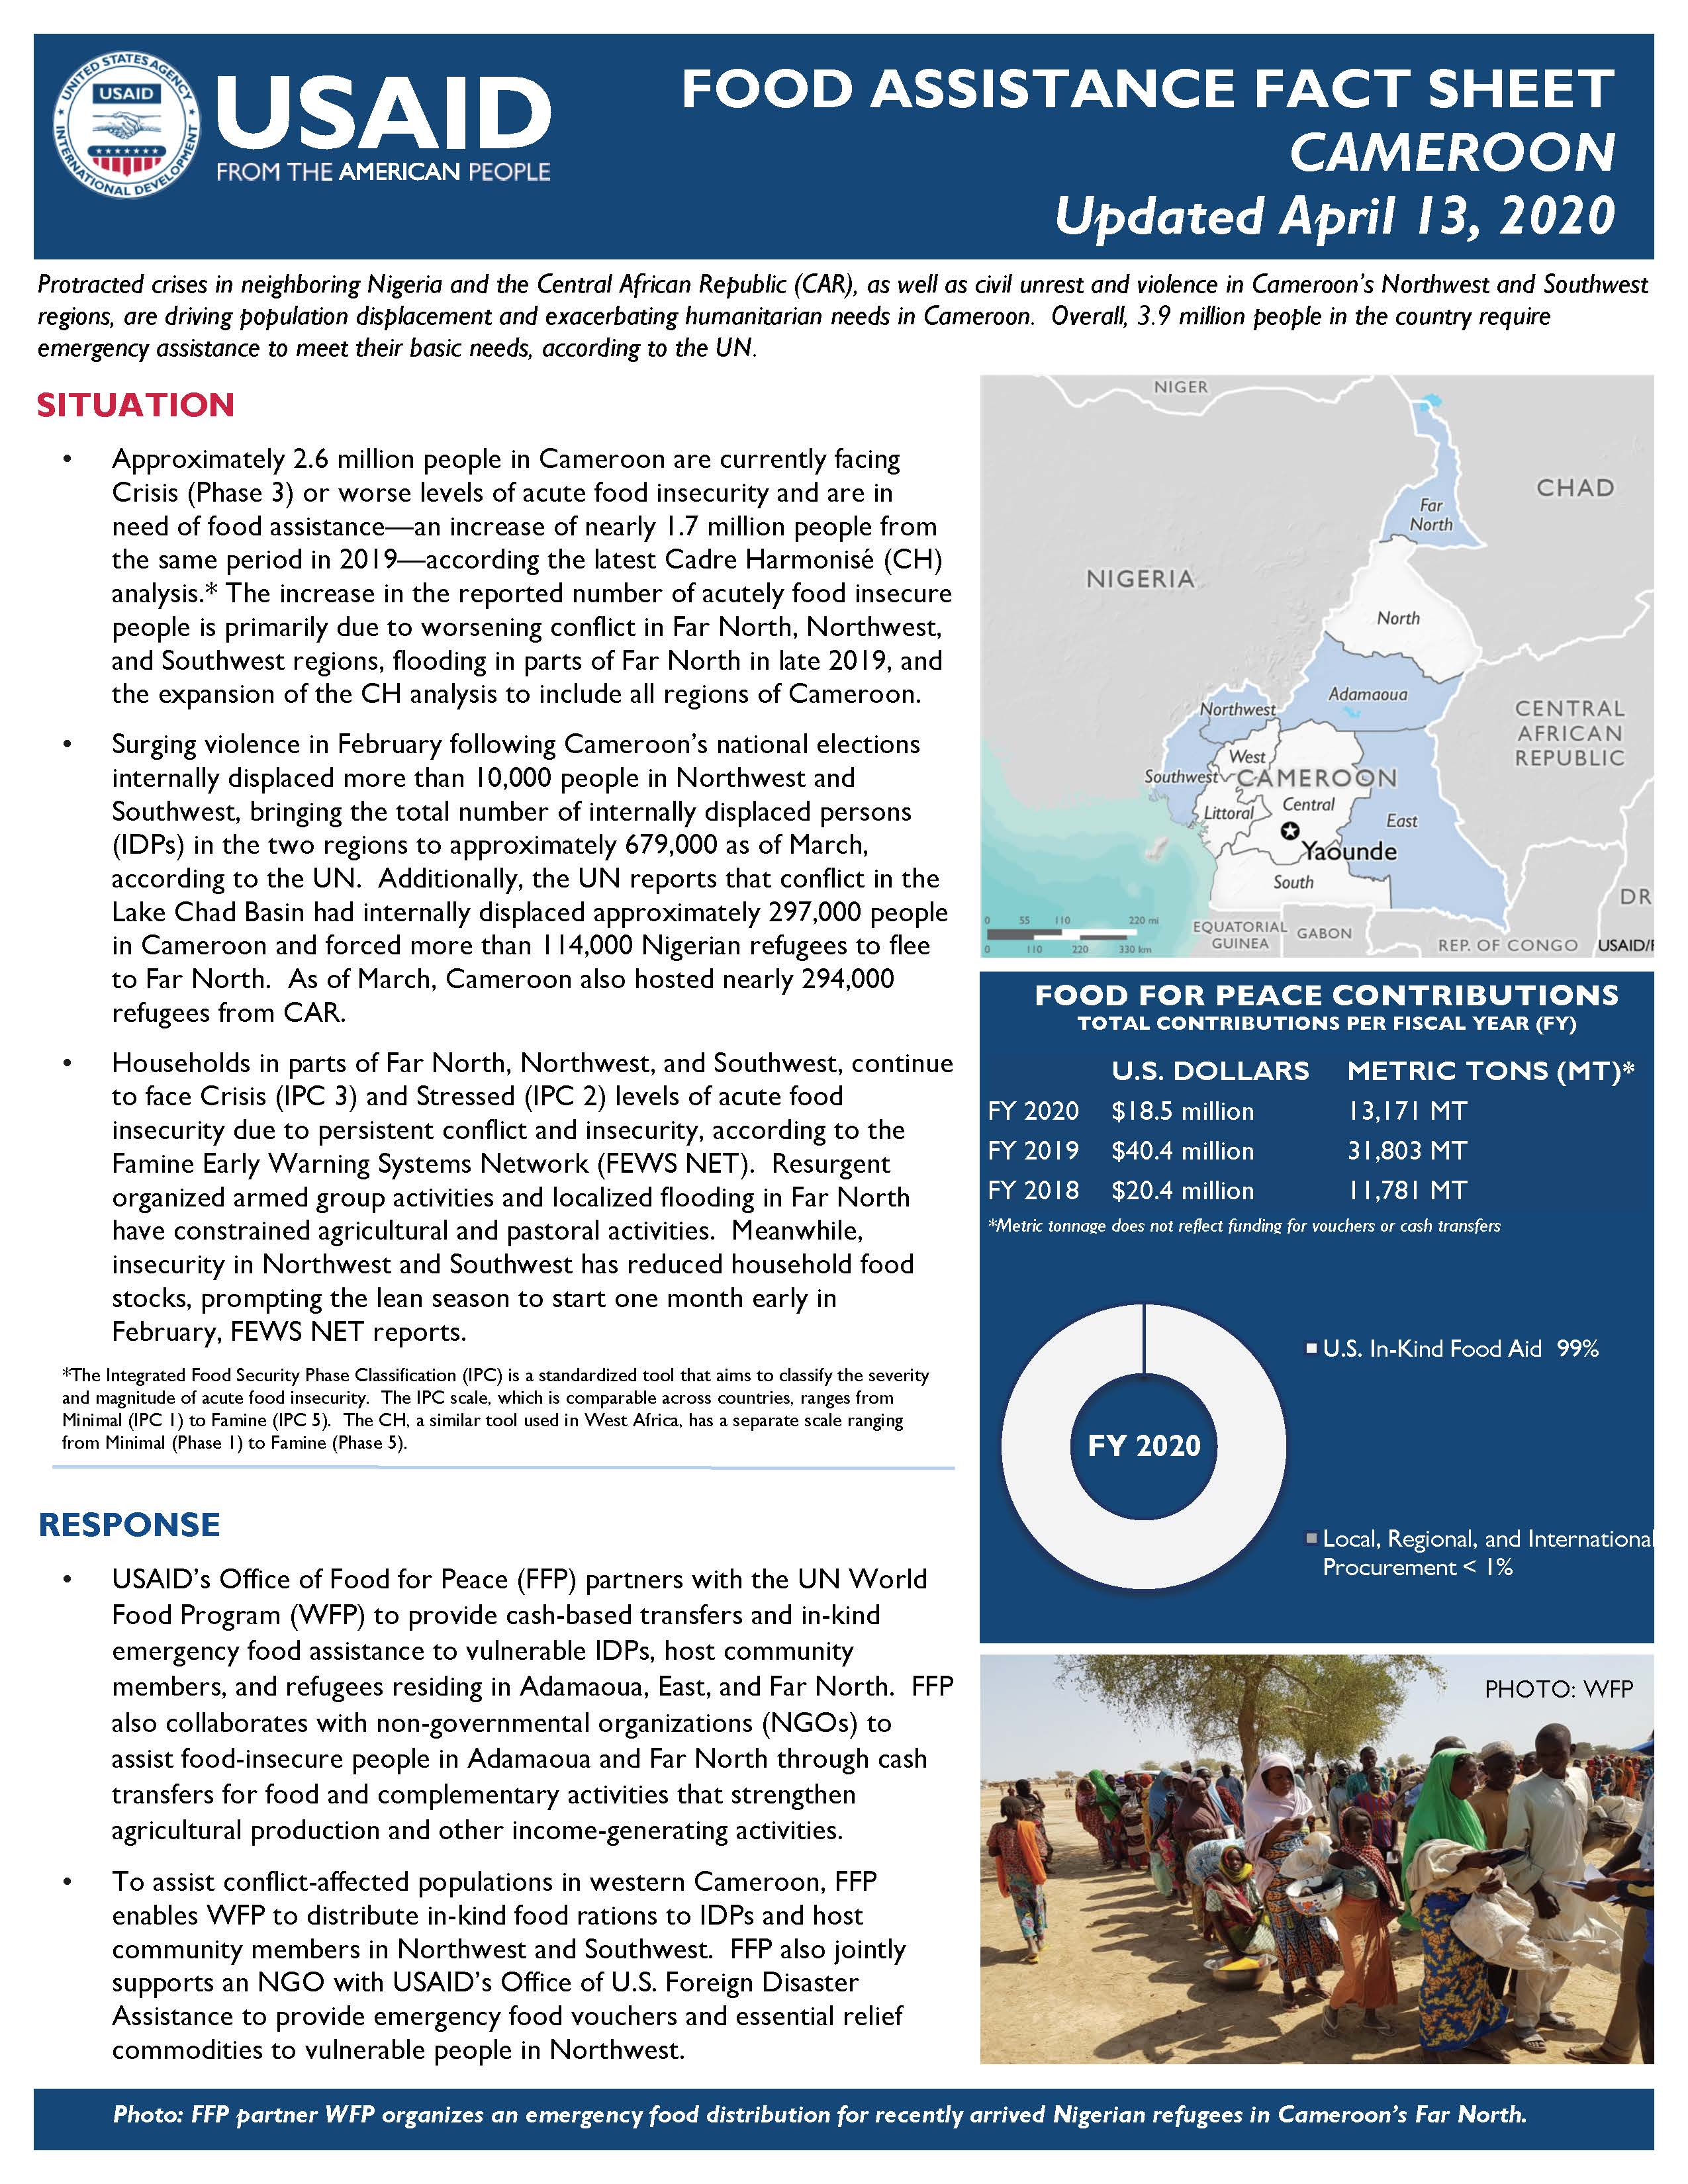 Food Assistance Fact Sheet - Cameroon